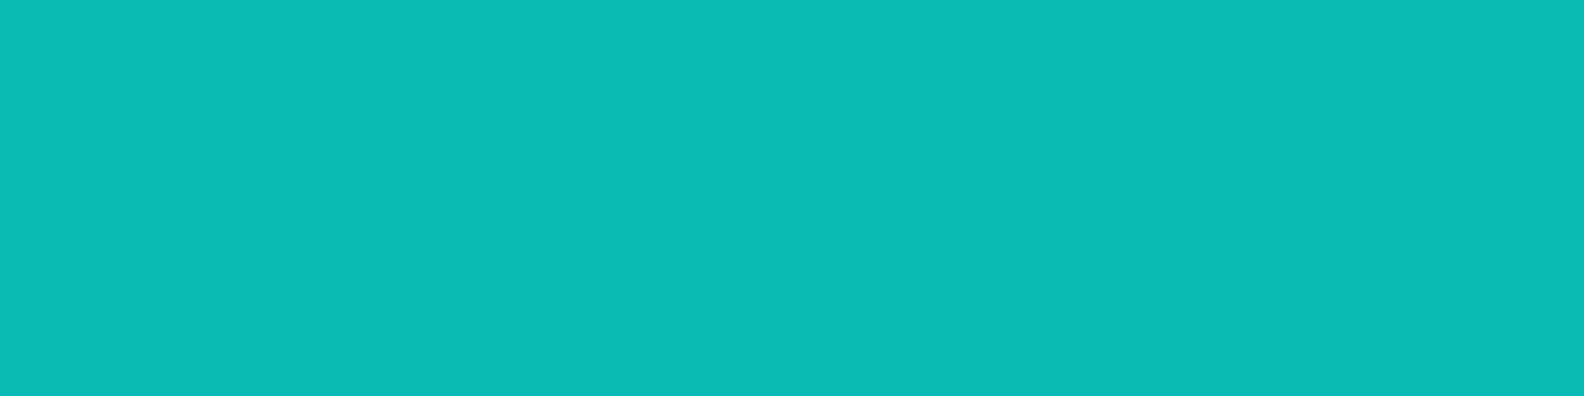 1584x396 Tiffany Blue Solid Color Background